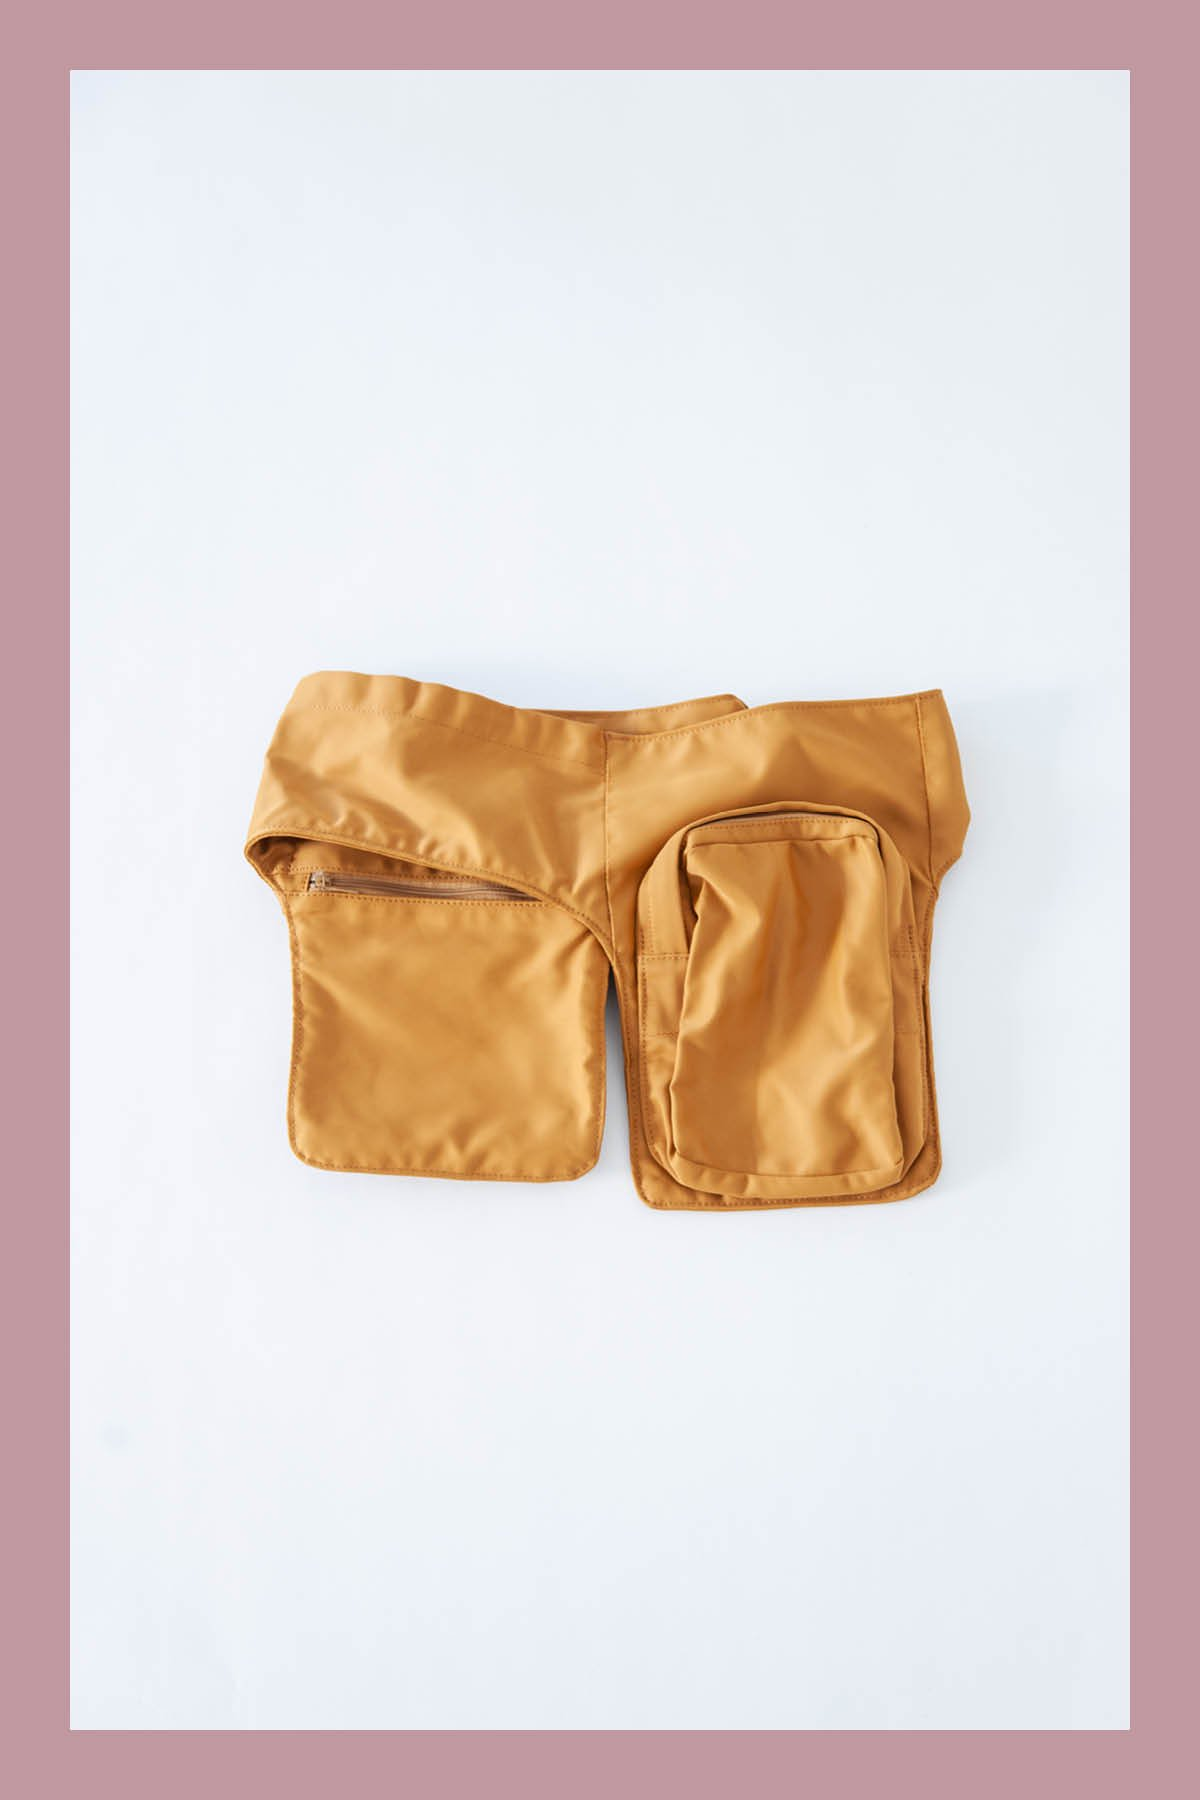 whowhat / CUMMER POUCH